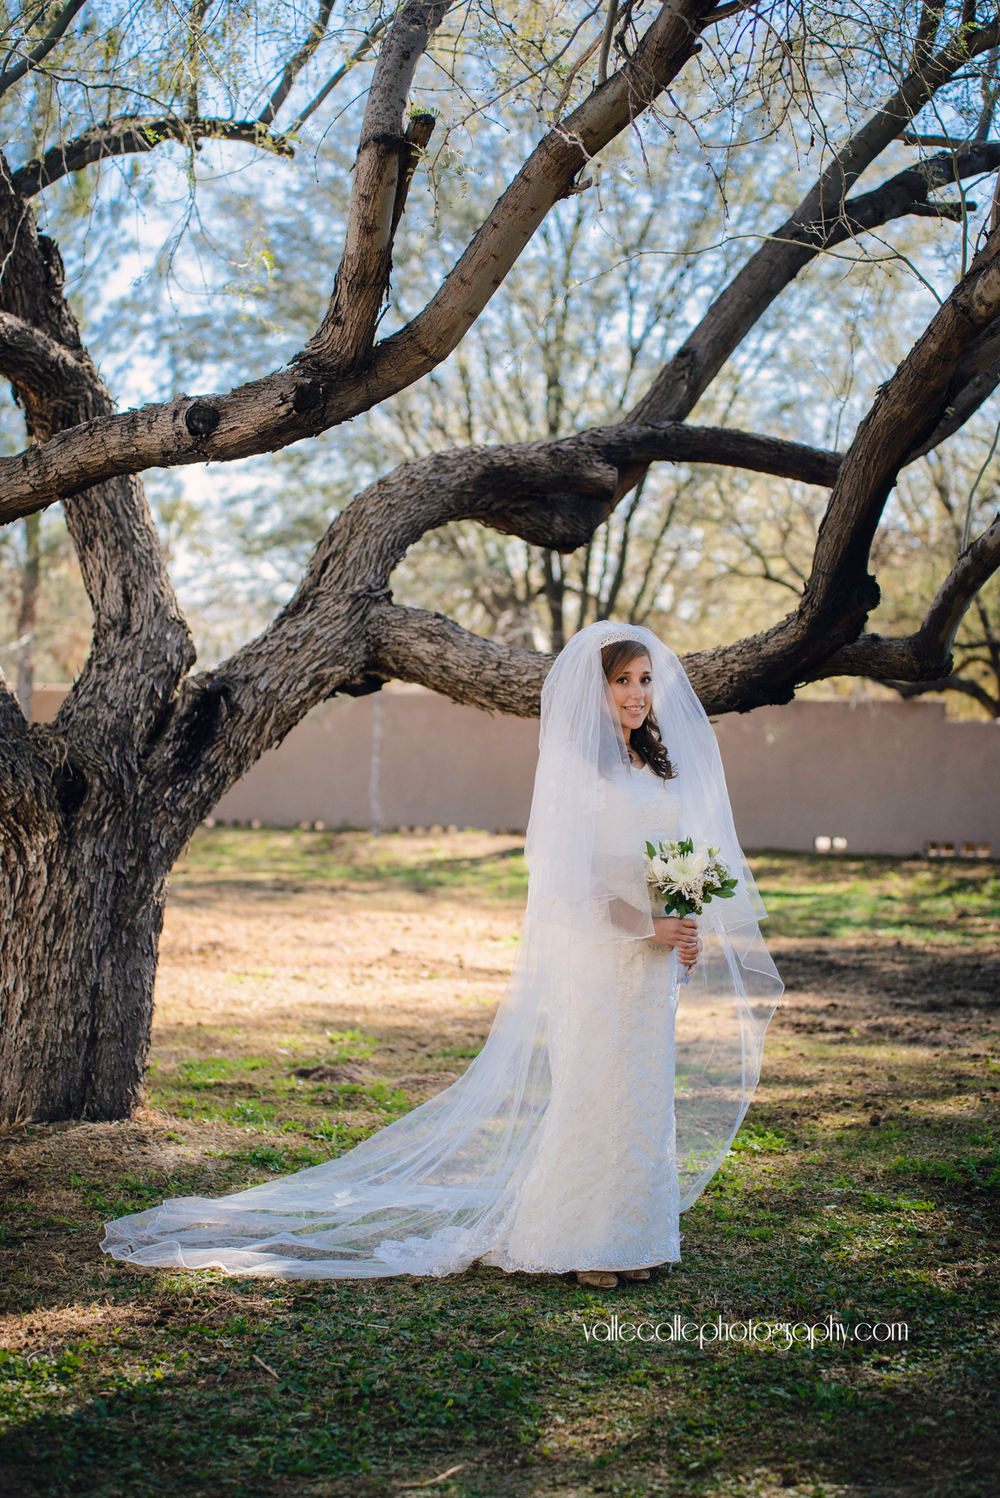 Beautiful Jewish bride in Tucson, AZ